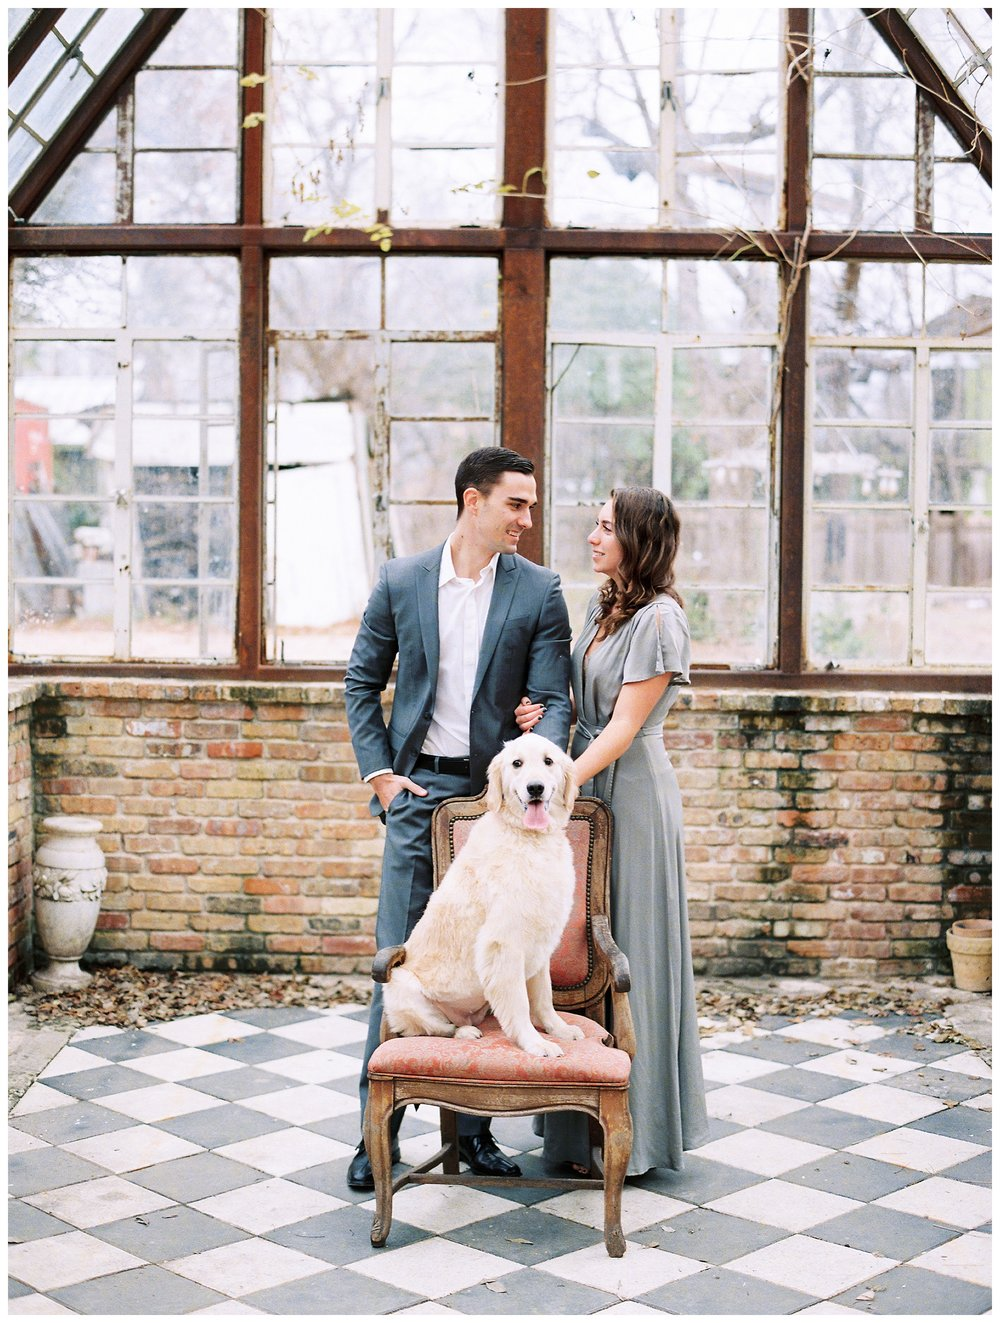 Austin_Engagement_Session_Kir2ben_0014.jpg